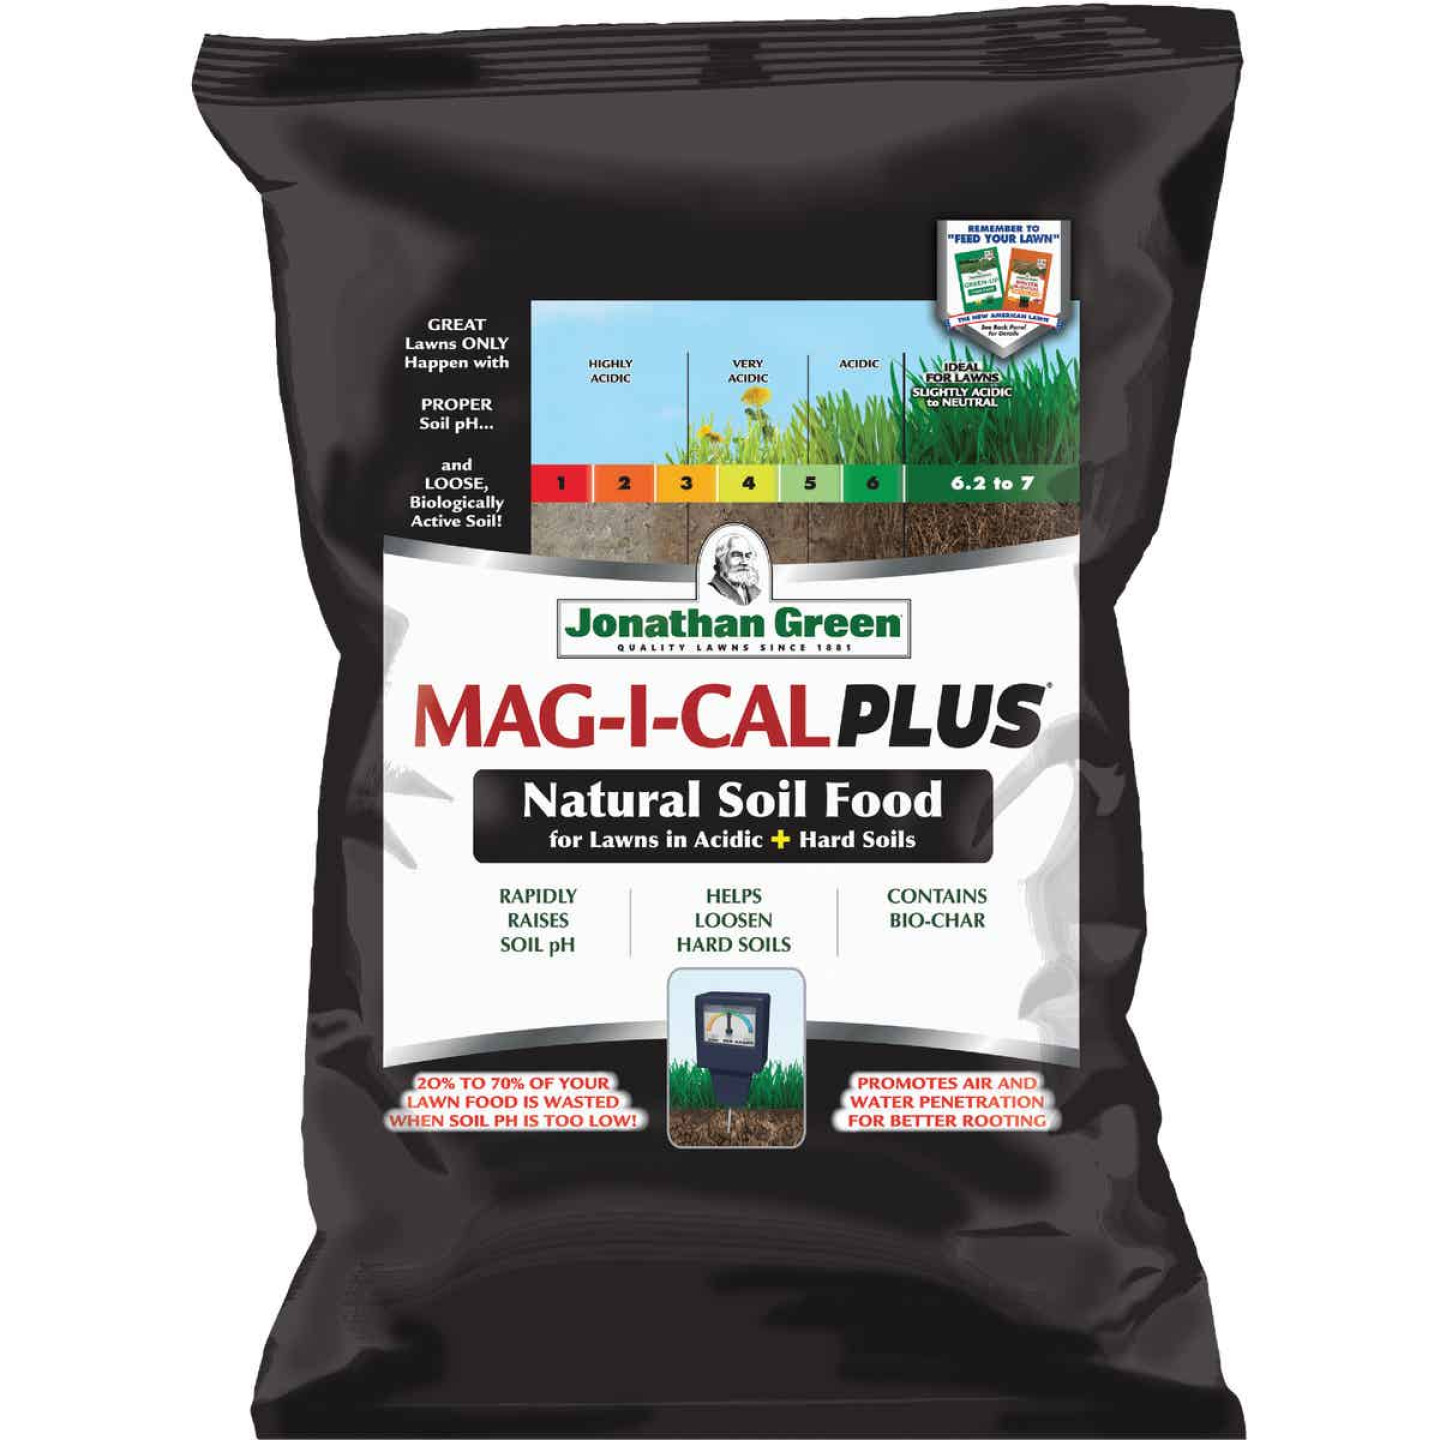 Jonathan Green MAG-I-CAL Plus 54 Lb. 15,000 Sq. Ft. 28% Calcium Lawn Fertilizer For Acidic Soil  Image 1